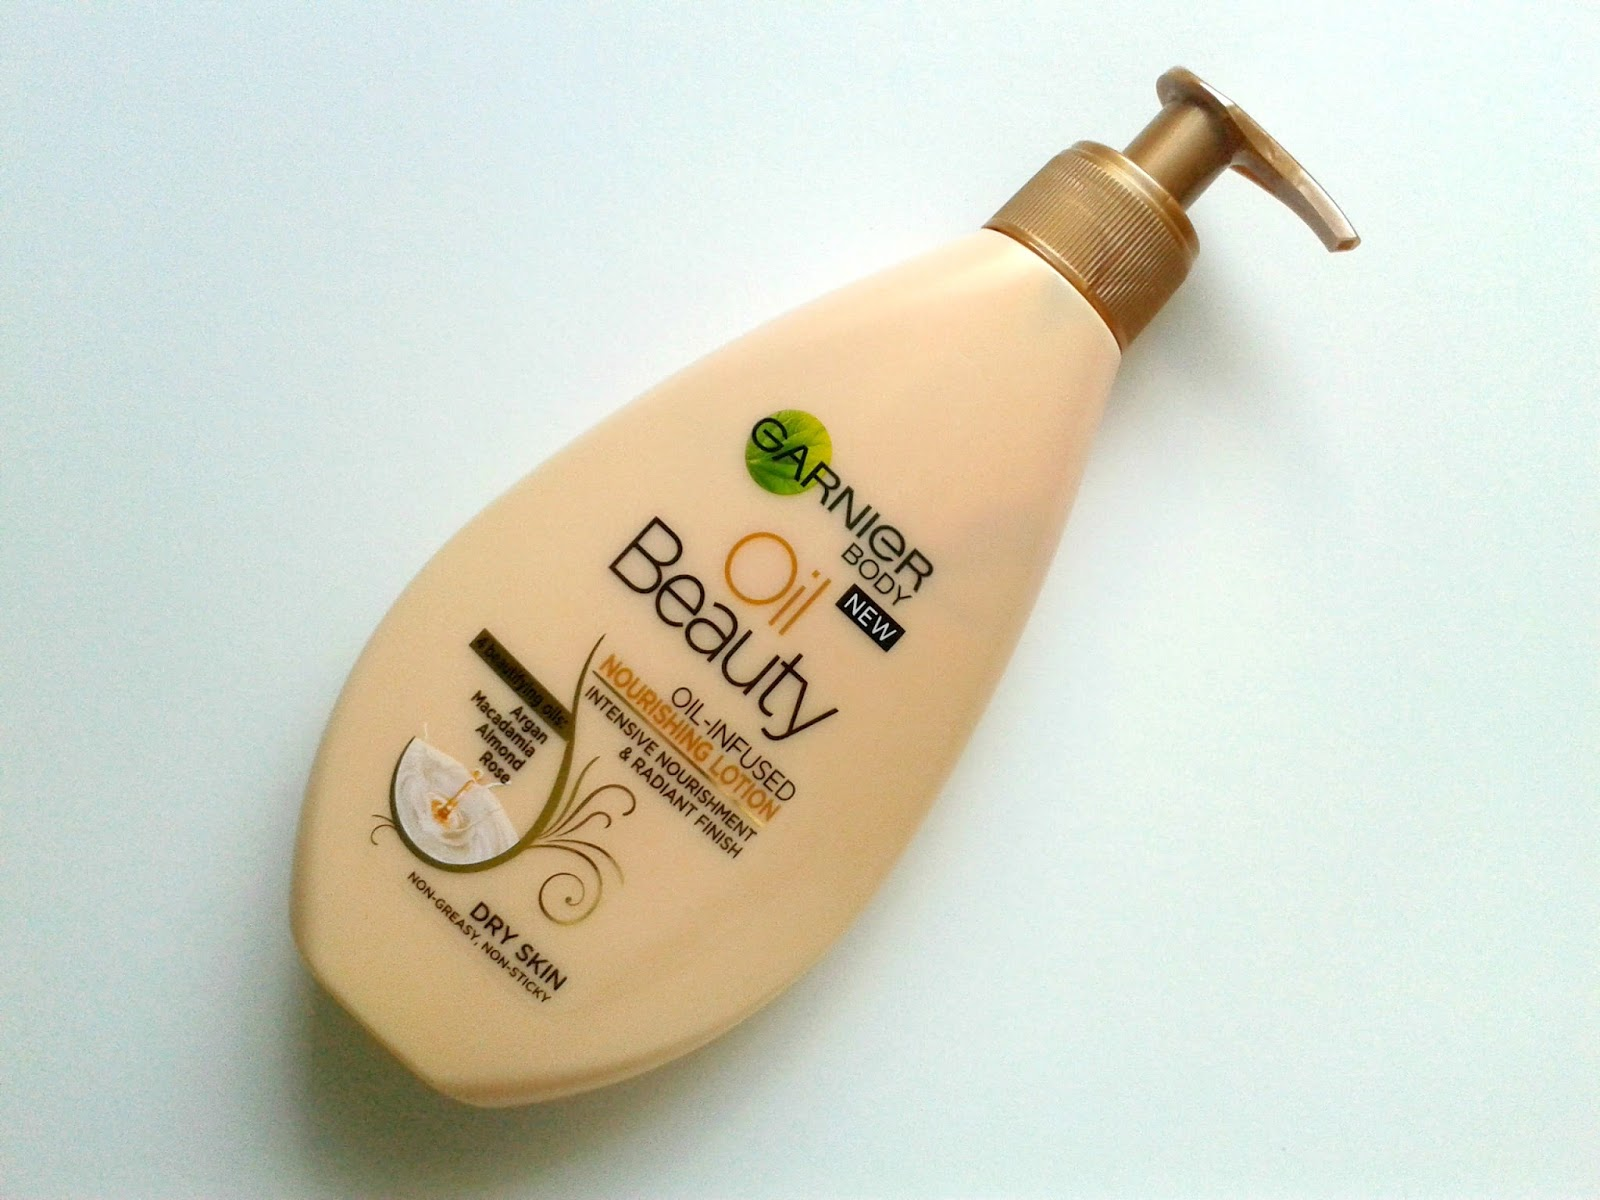 Garnier Oil Beauty Oil-Infused Nourishing Lotion Beauty Review